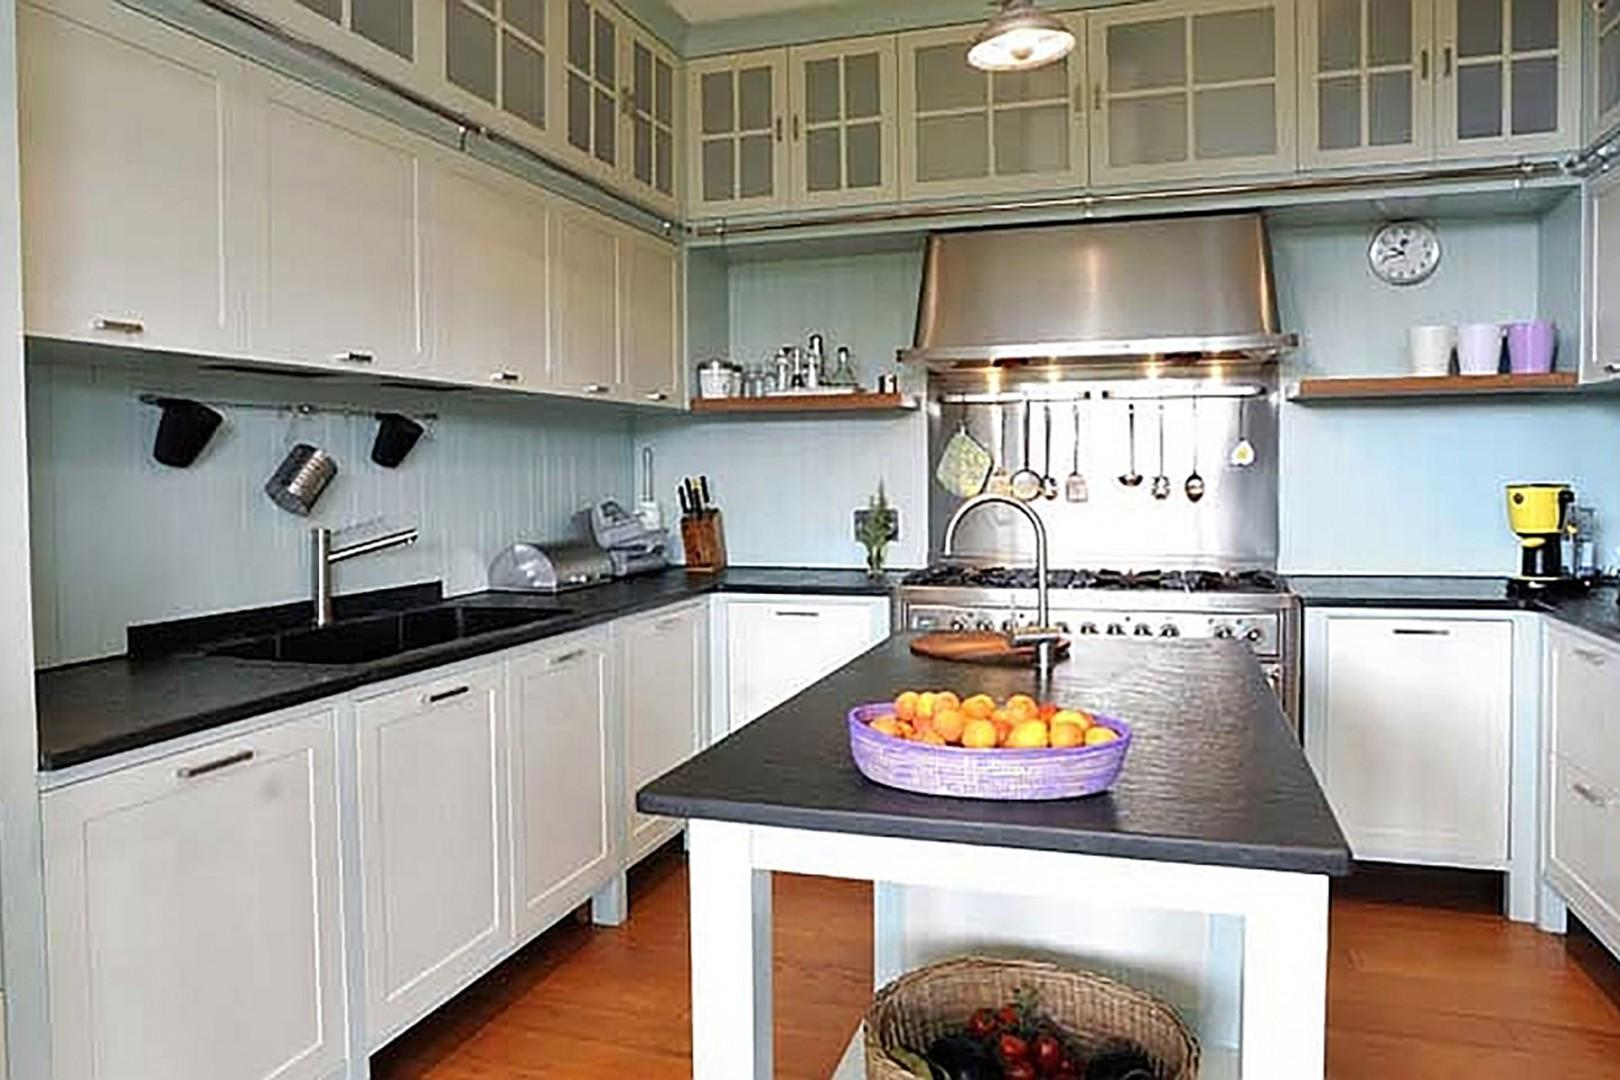 Fully appointed kitchen with high quality appliances.